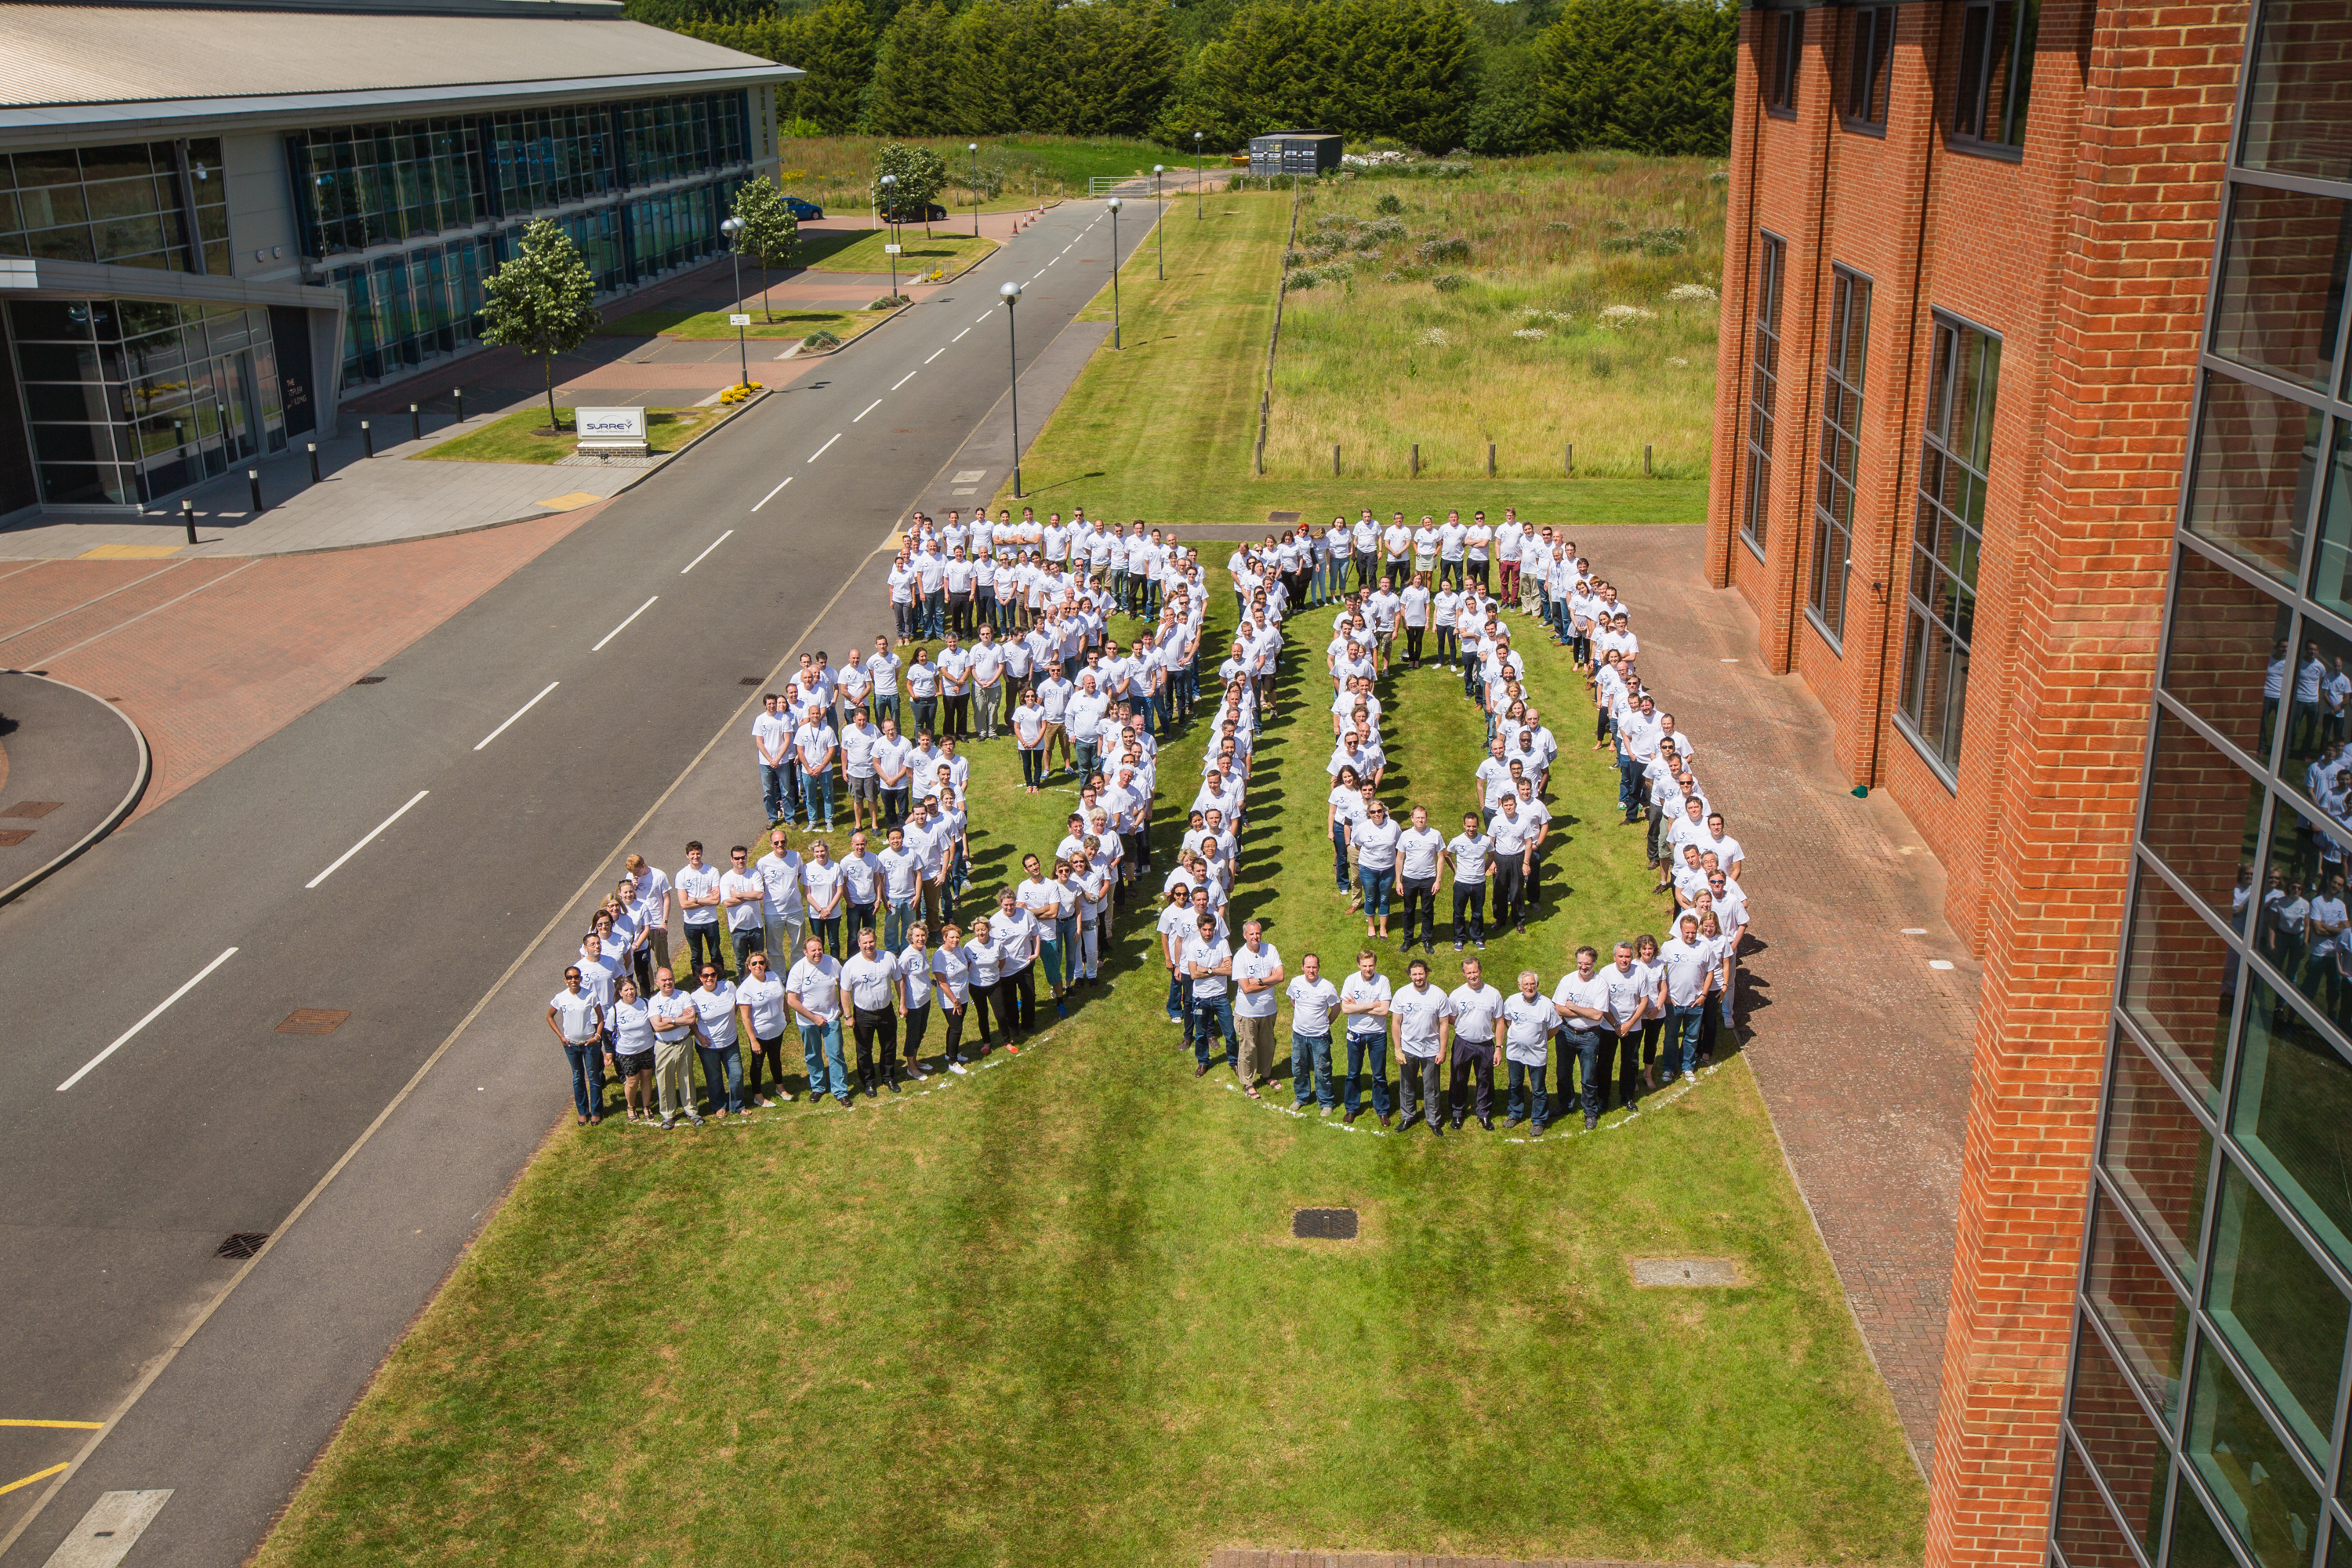 Staff celebrating the Company's 30th Anniversary at the Guildford site